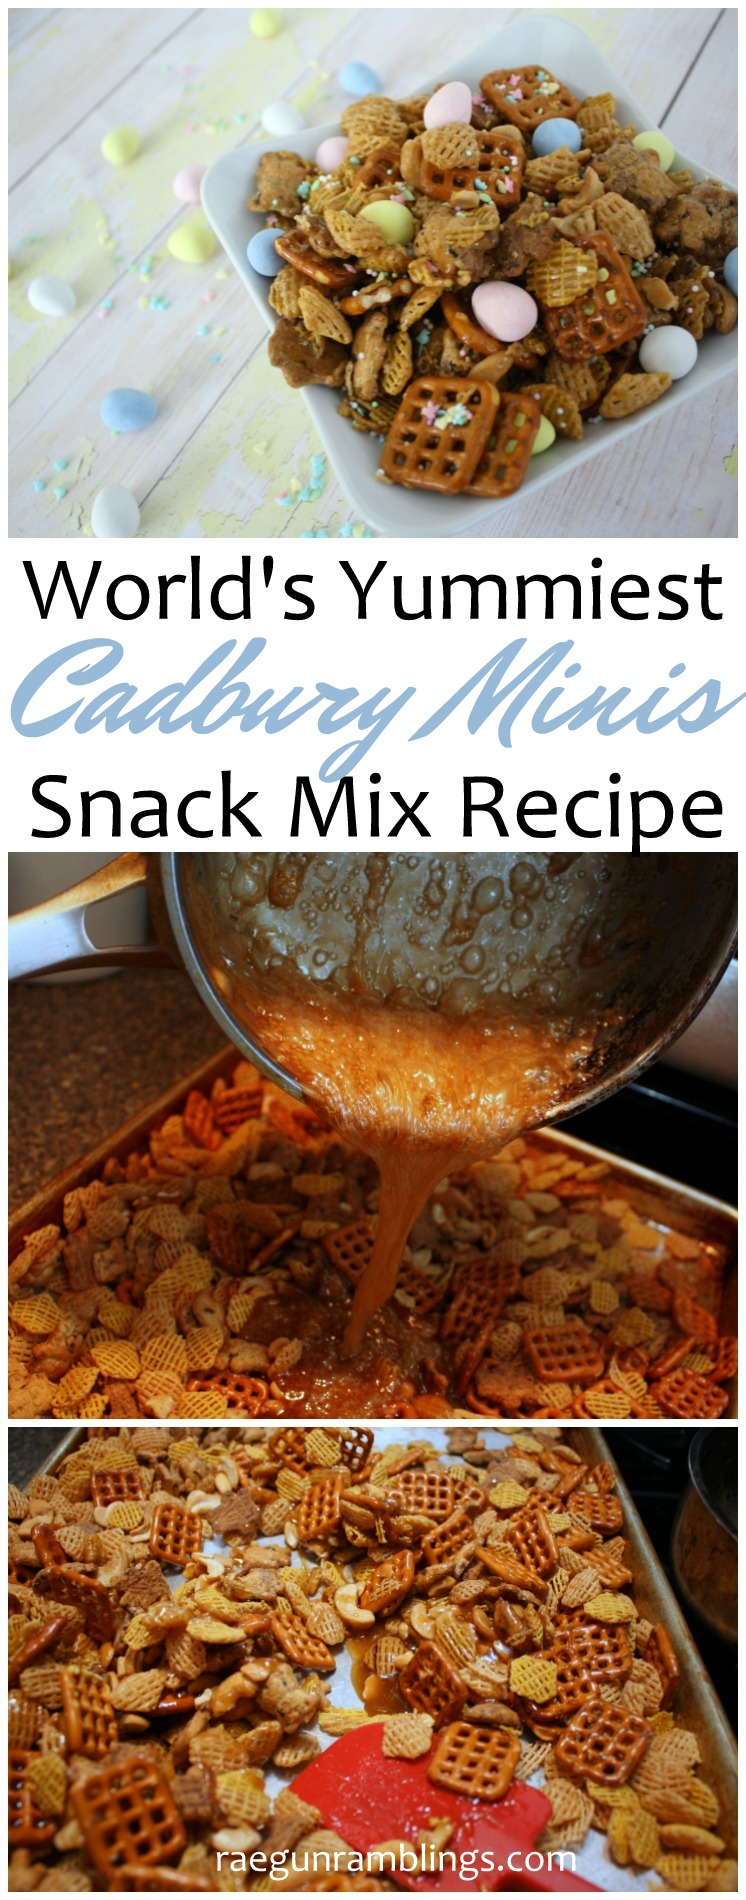 Can't stop making this snack mix recipe. So good with the Cadbury mini eggs but would be just as yummy as an every day chex or crispix mix